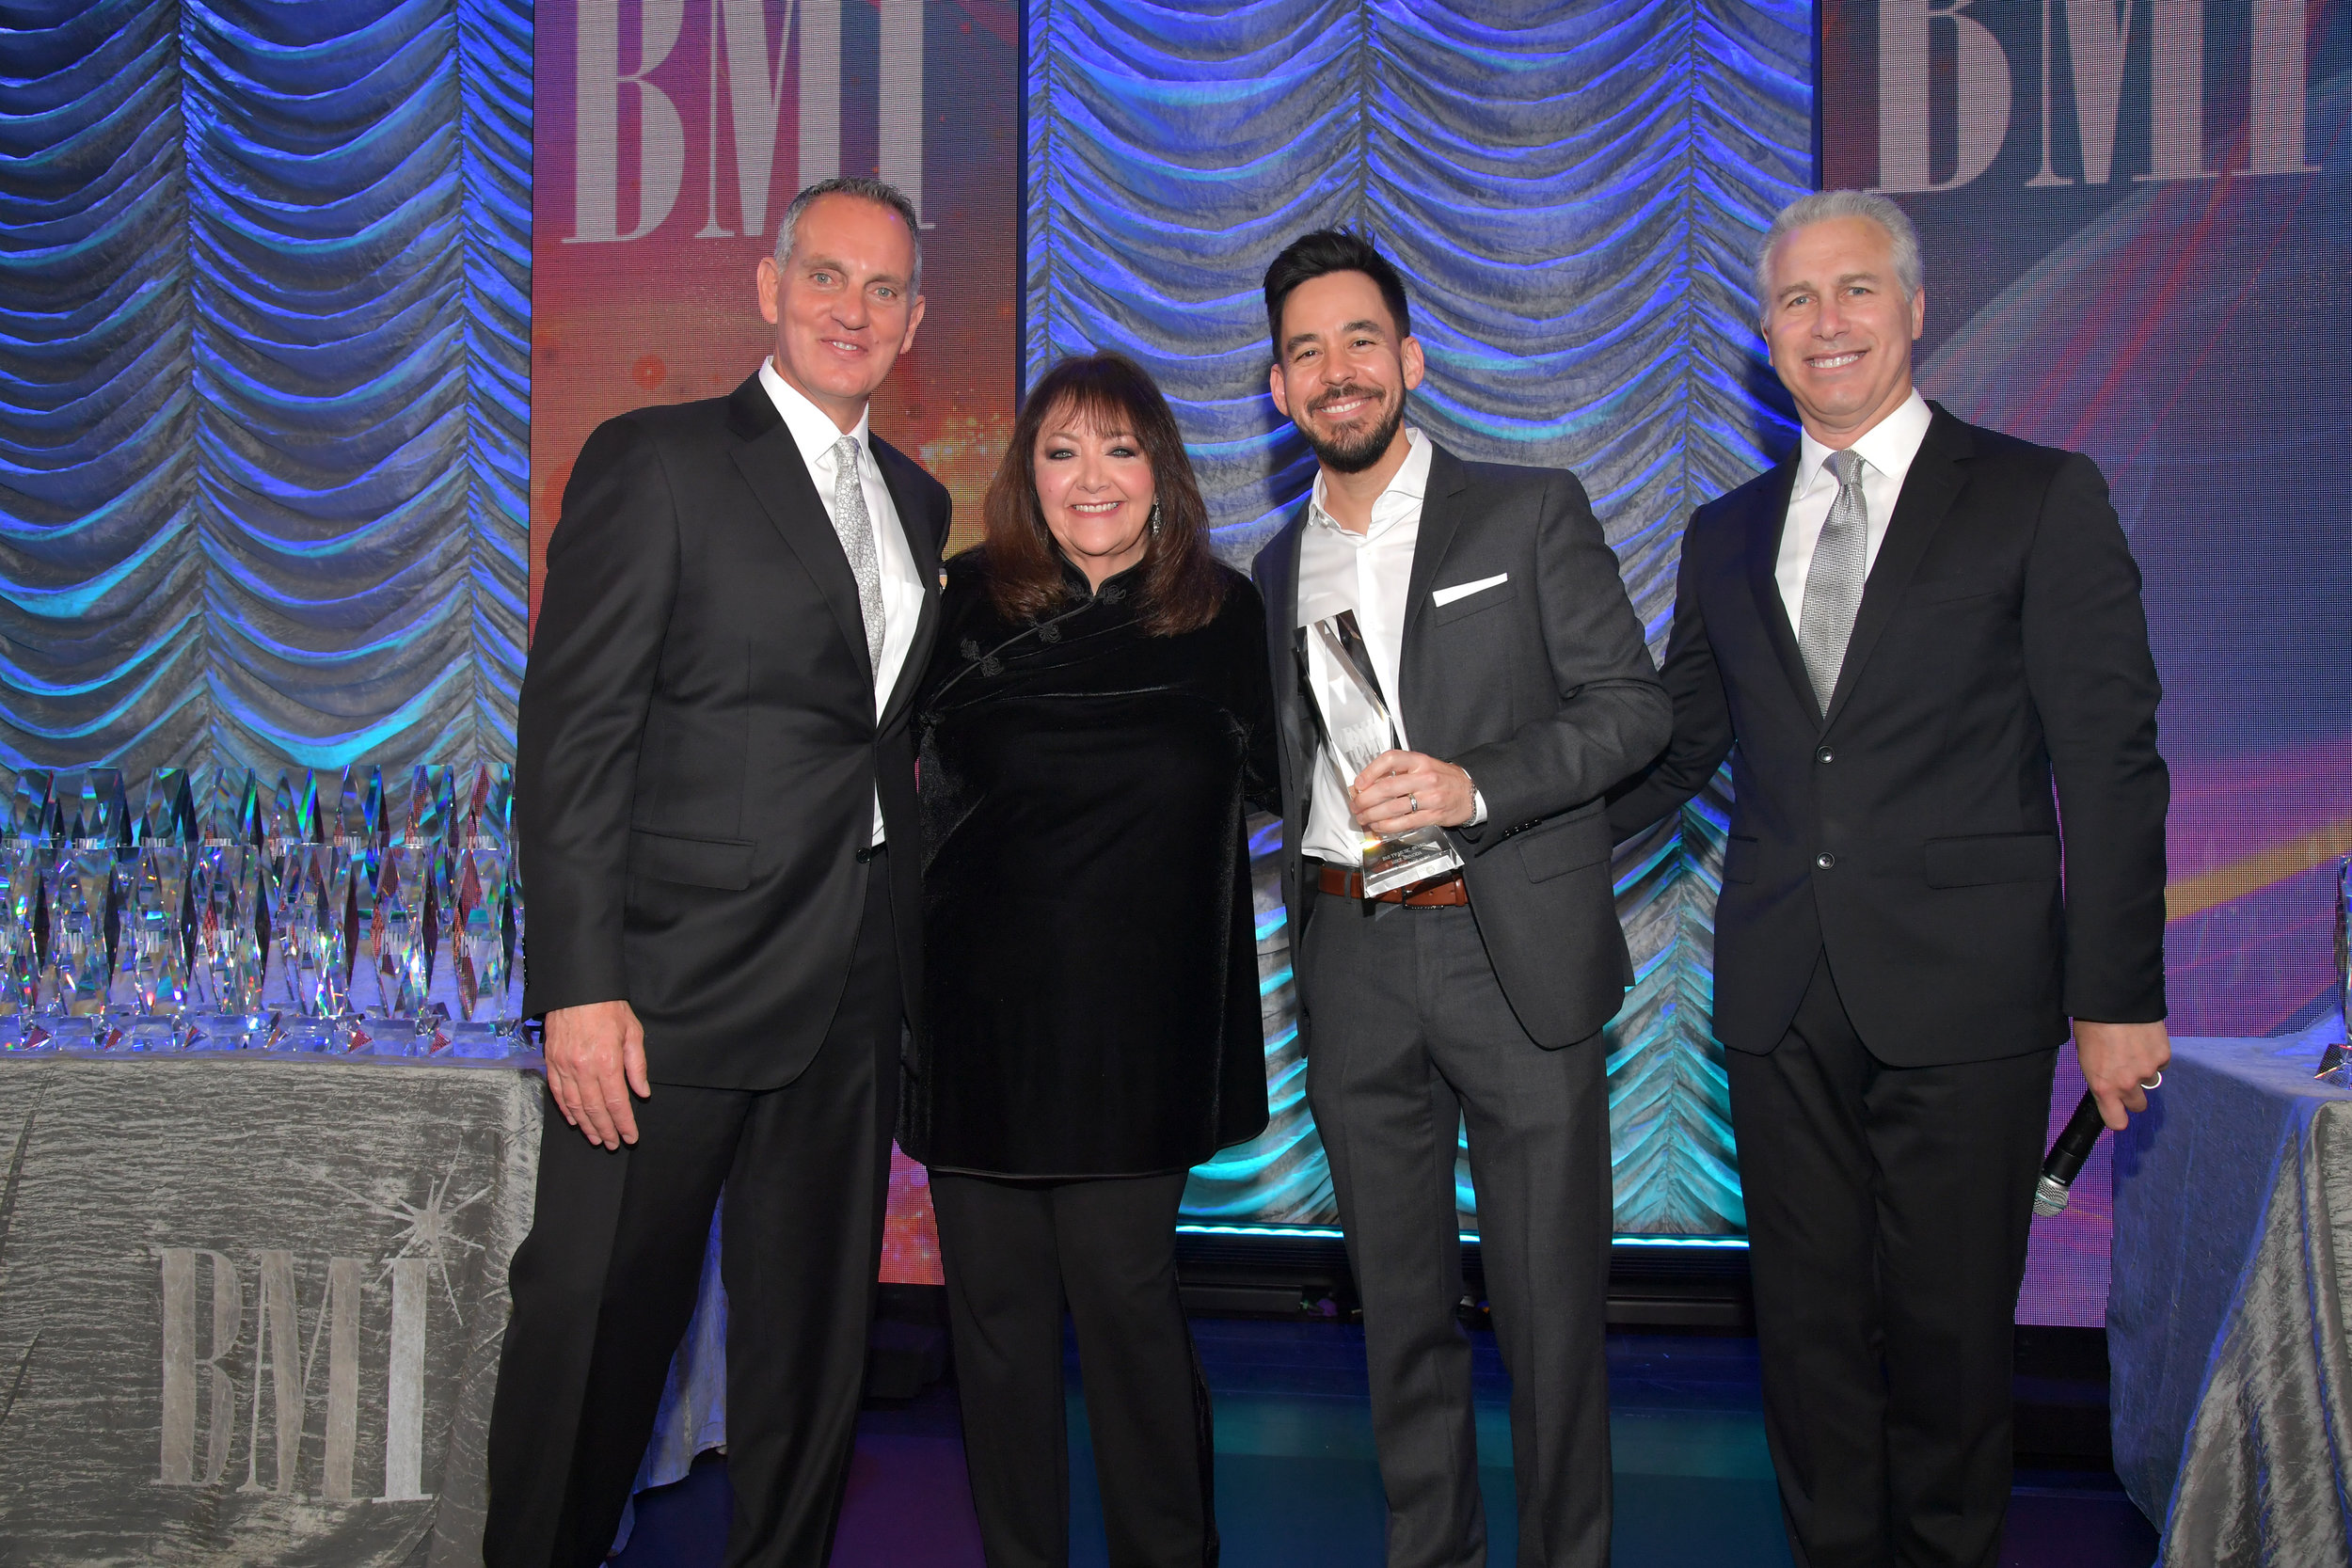 BEVERLY HILLS, CALIFORNIA - MAY 15: (L-R) BMI President & Chief Executive Officer Mike O'Neill, Mike Shinoda, BMI Creative - Film, TV & Visual Media VP Doreen Ringer-Ross, and BMI Executive Vice President of Creative & Licensing Mike Steinberg pose onstage during the 35th annual BMI Film, TV & Visual Media Awards on May 15, 2019 in Beverly Hills, California. (Photo by Lester Cohen/Getty Images for BMI)